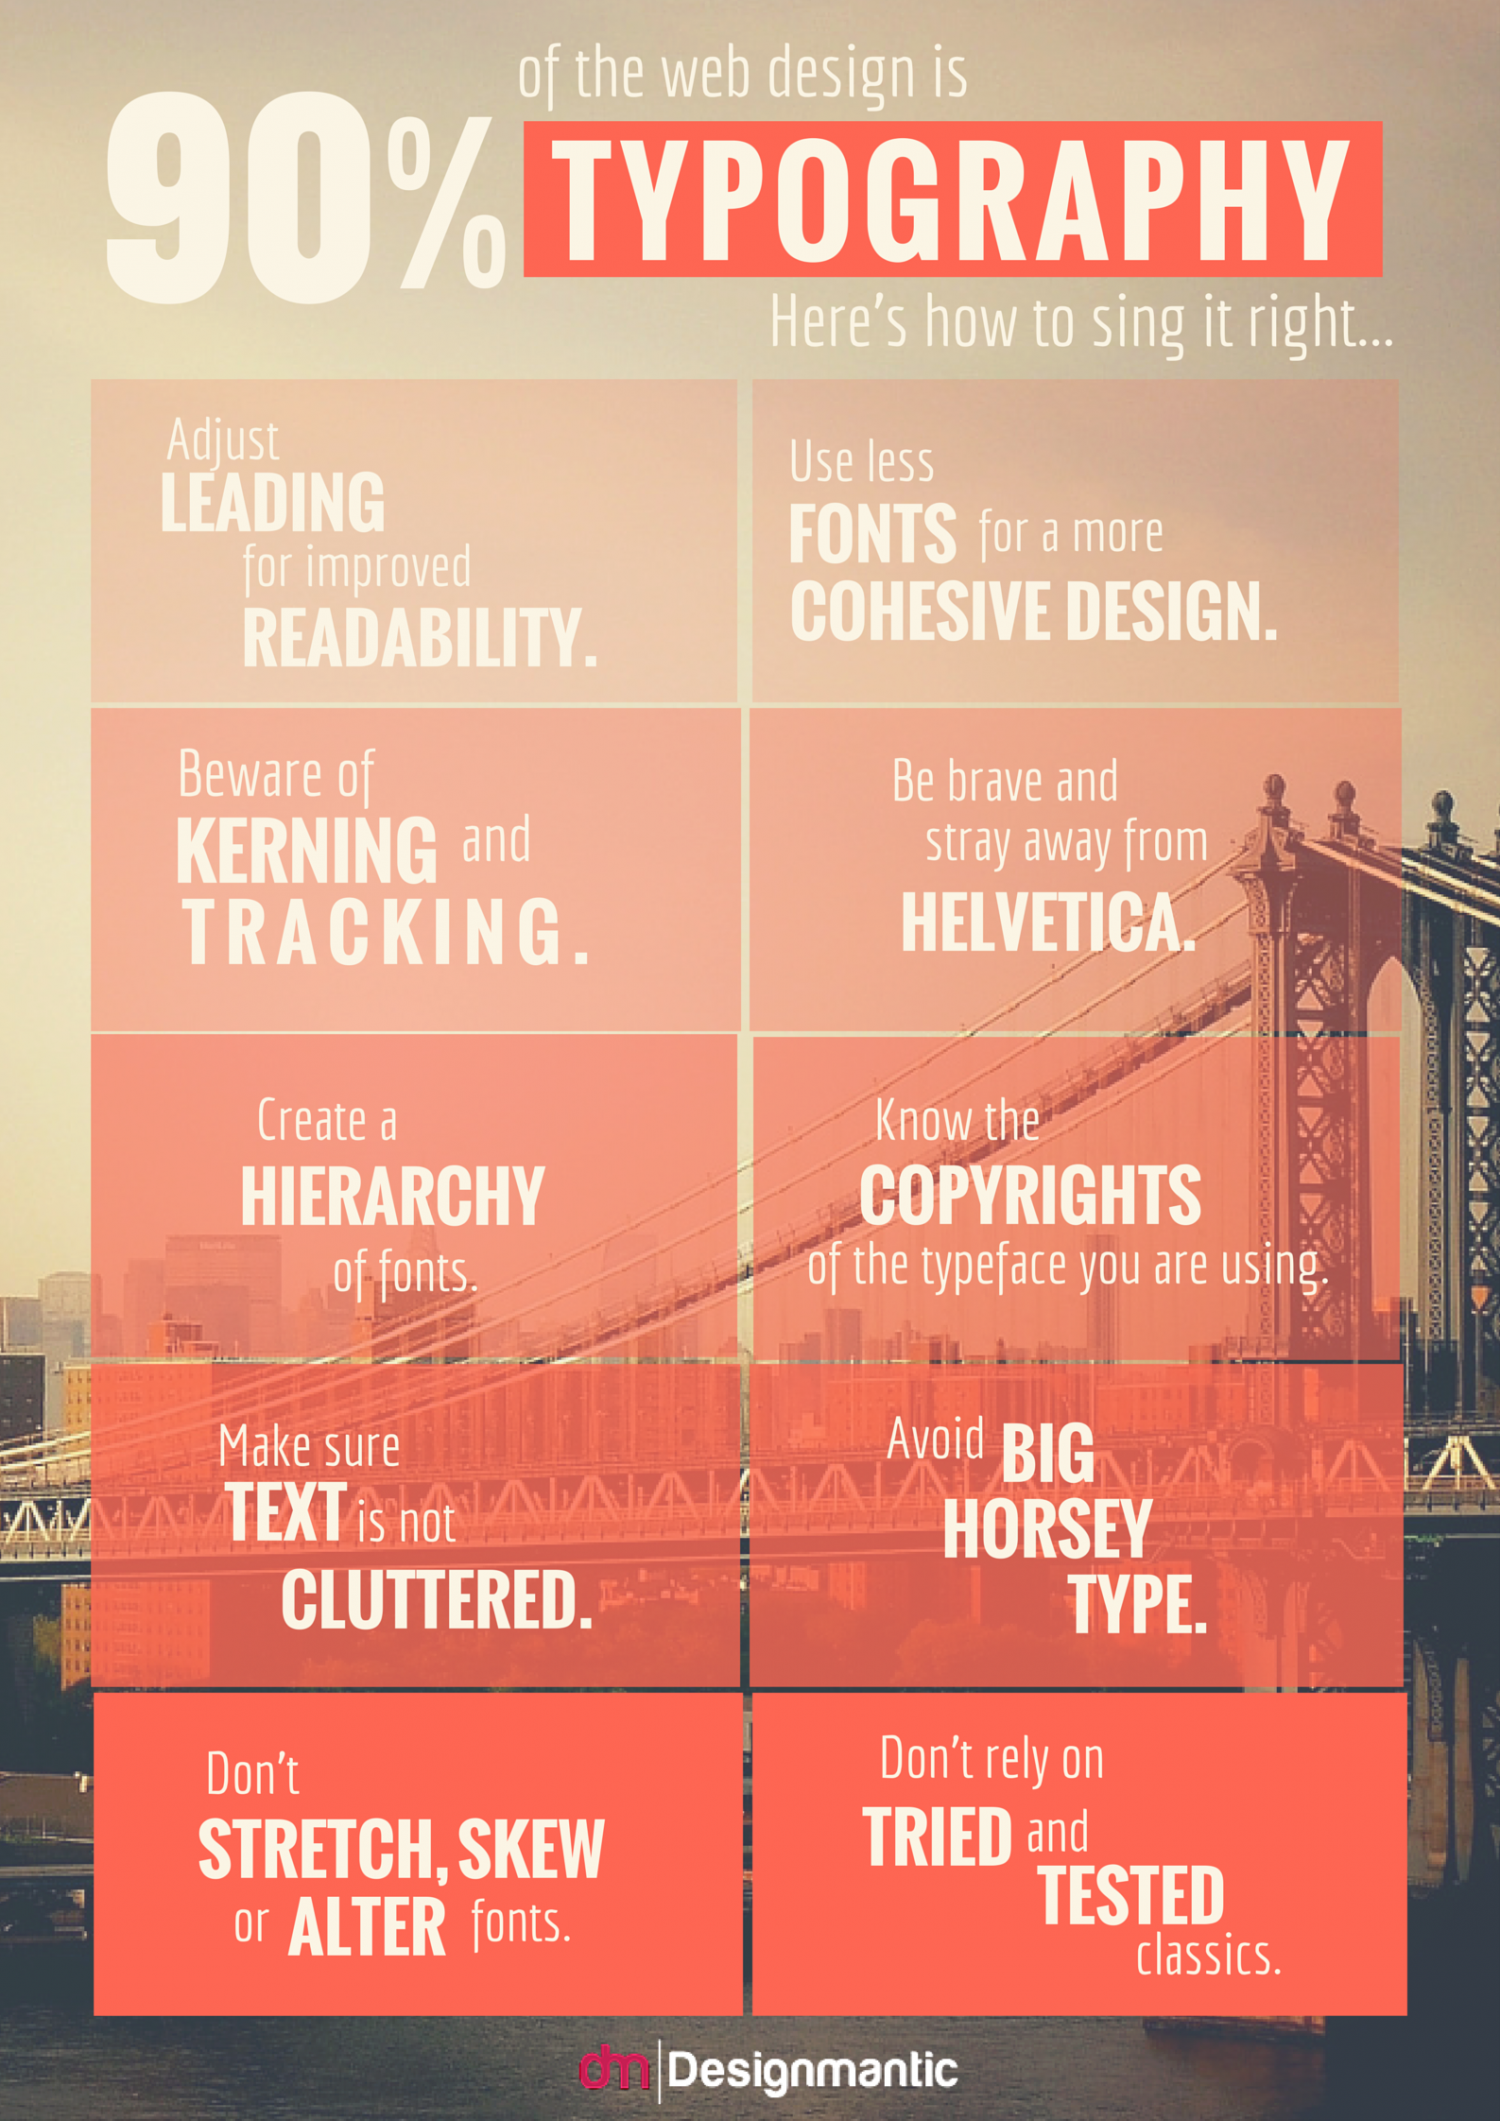 How To Sing Typography Right? Infographic